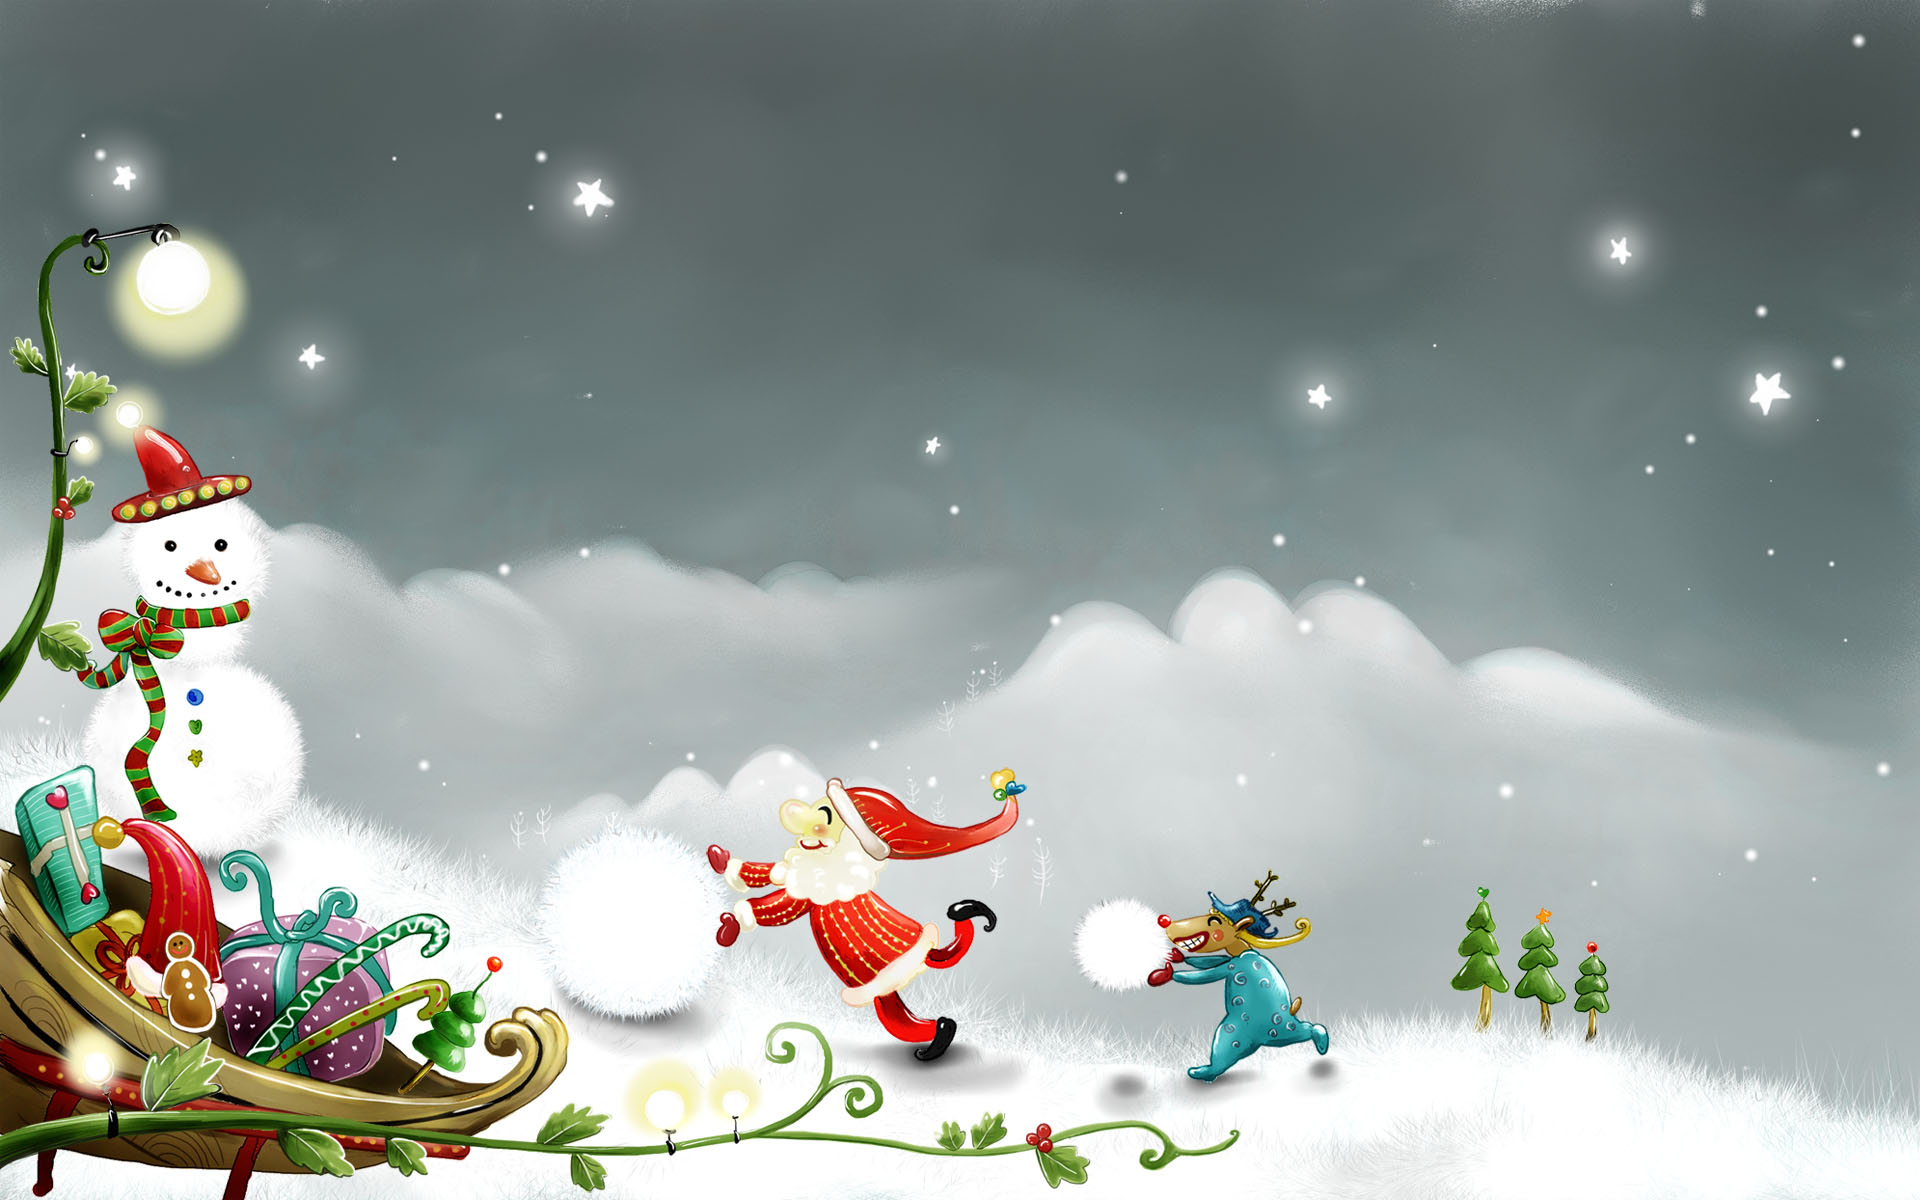 Creative Christmas Wallpaper